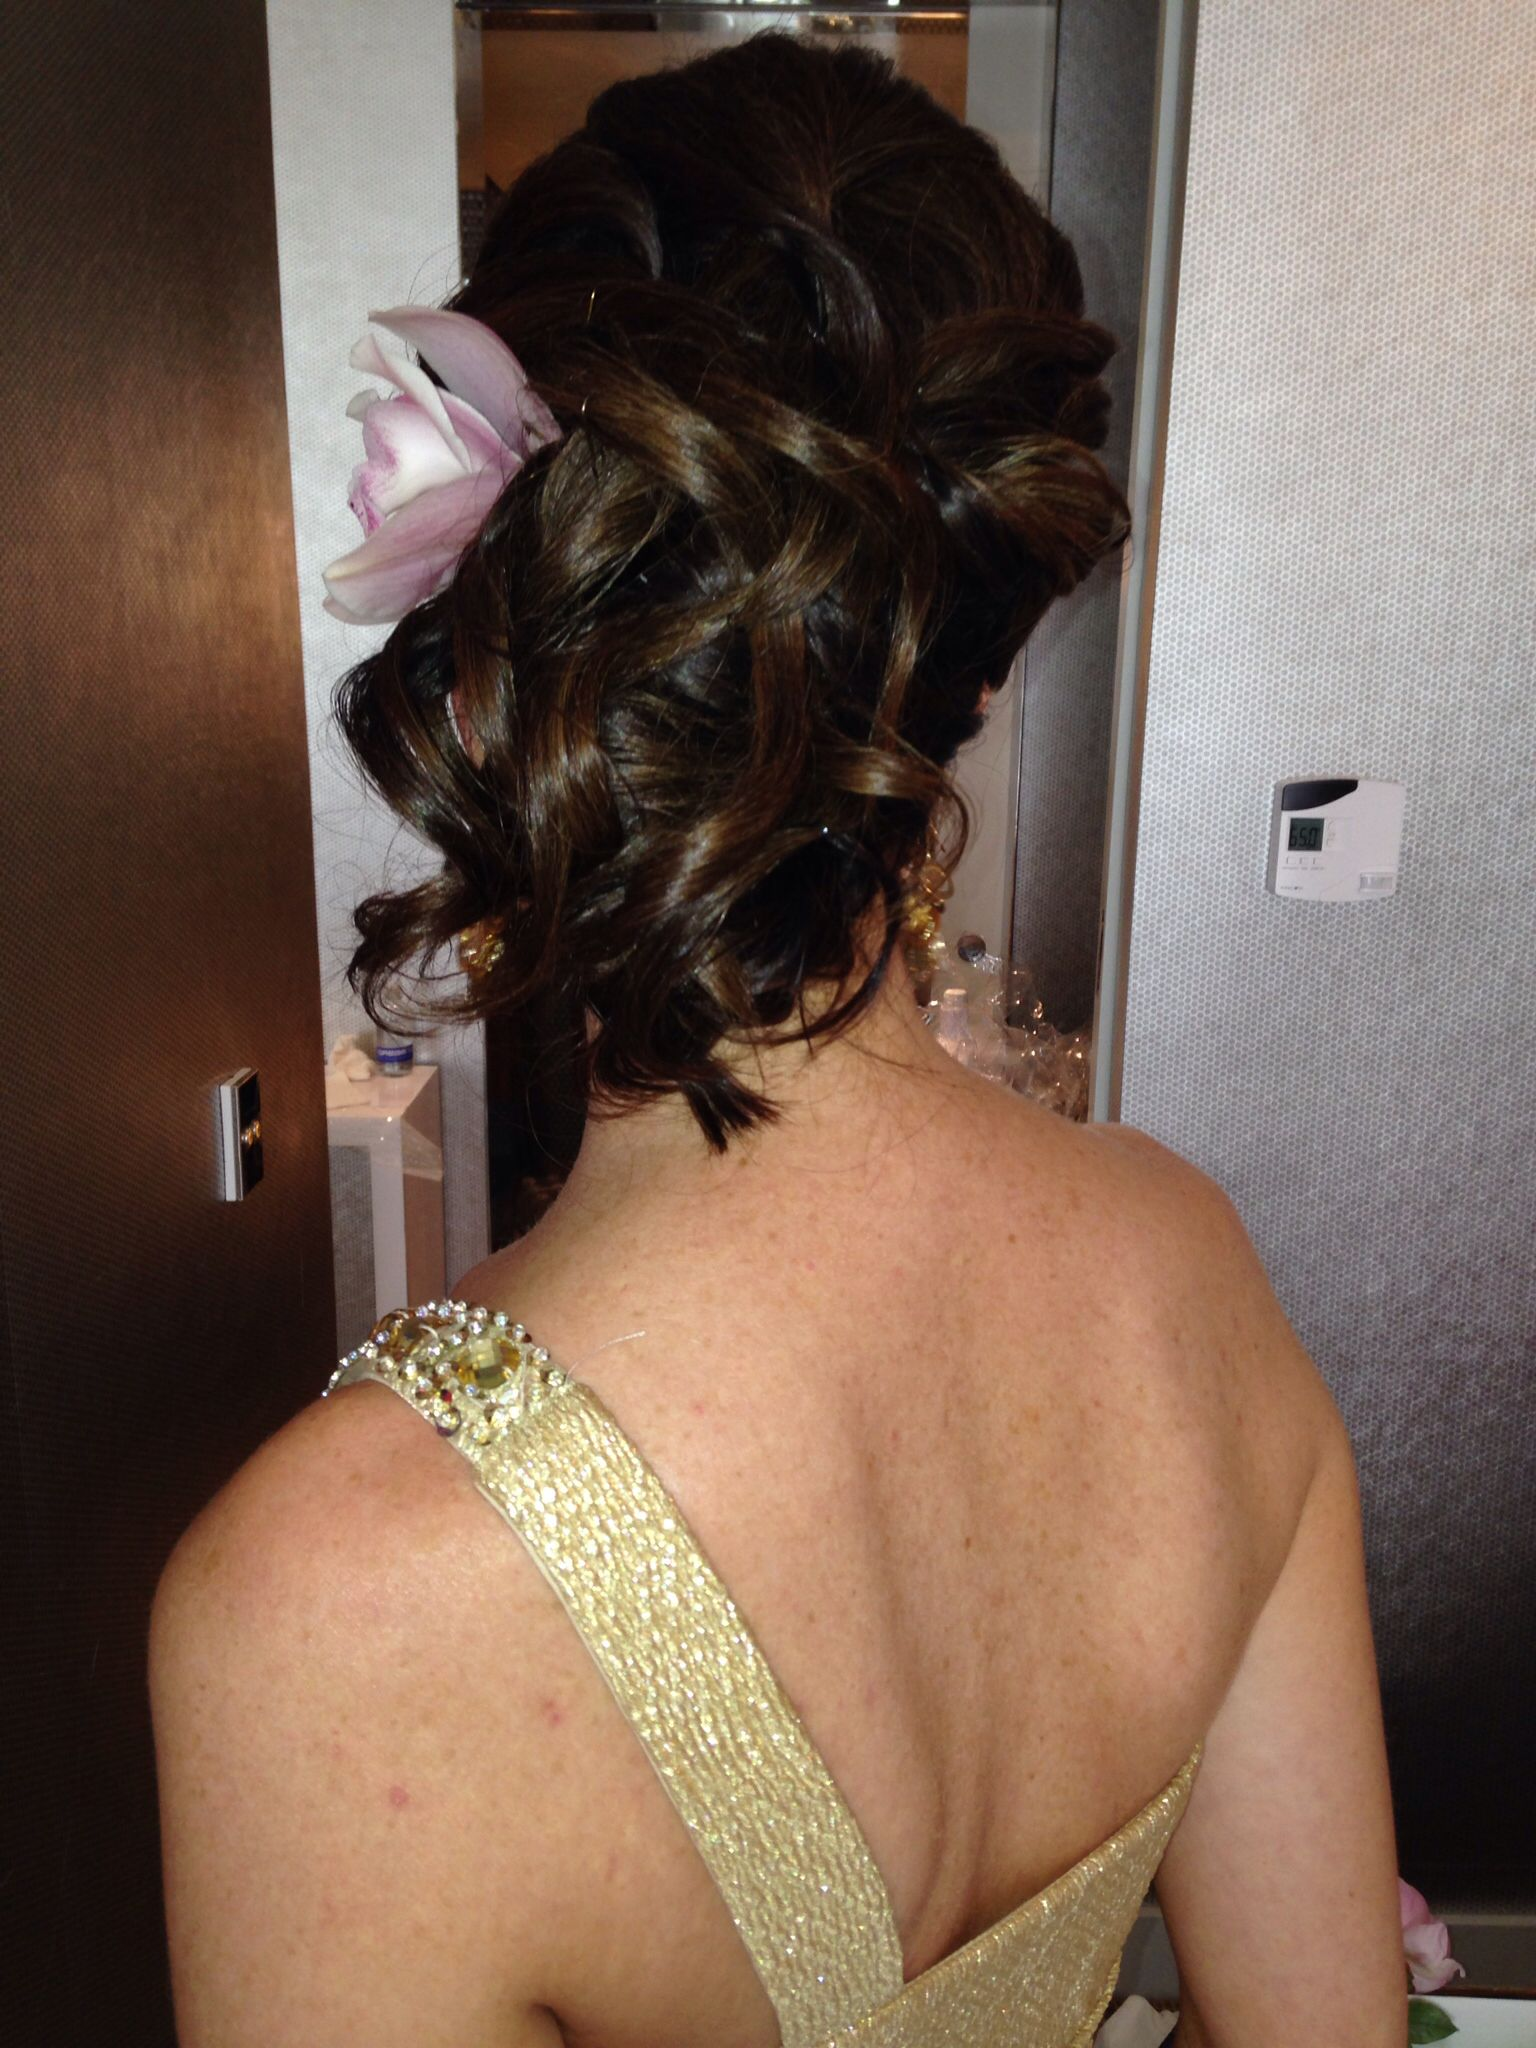 maid of honor hairstyle all up hair updo | pinterest | hair updo